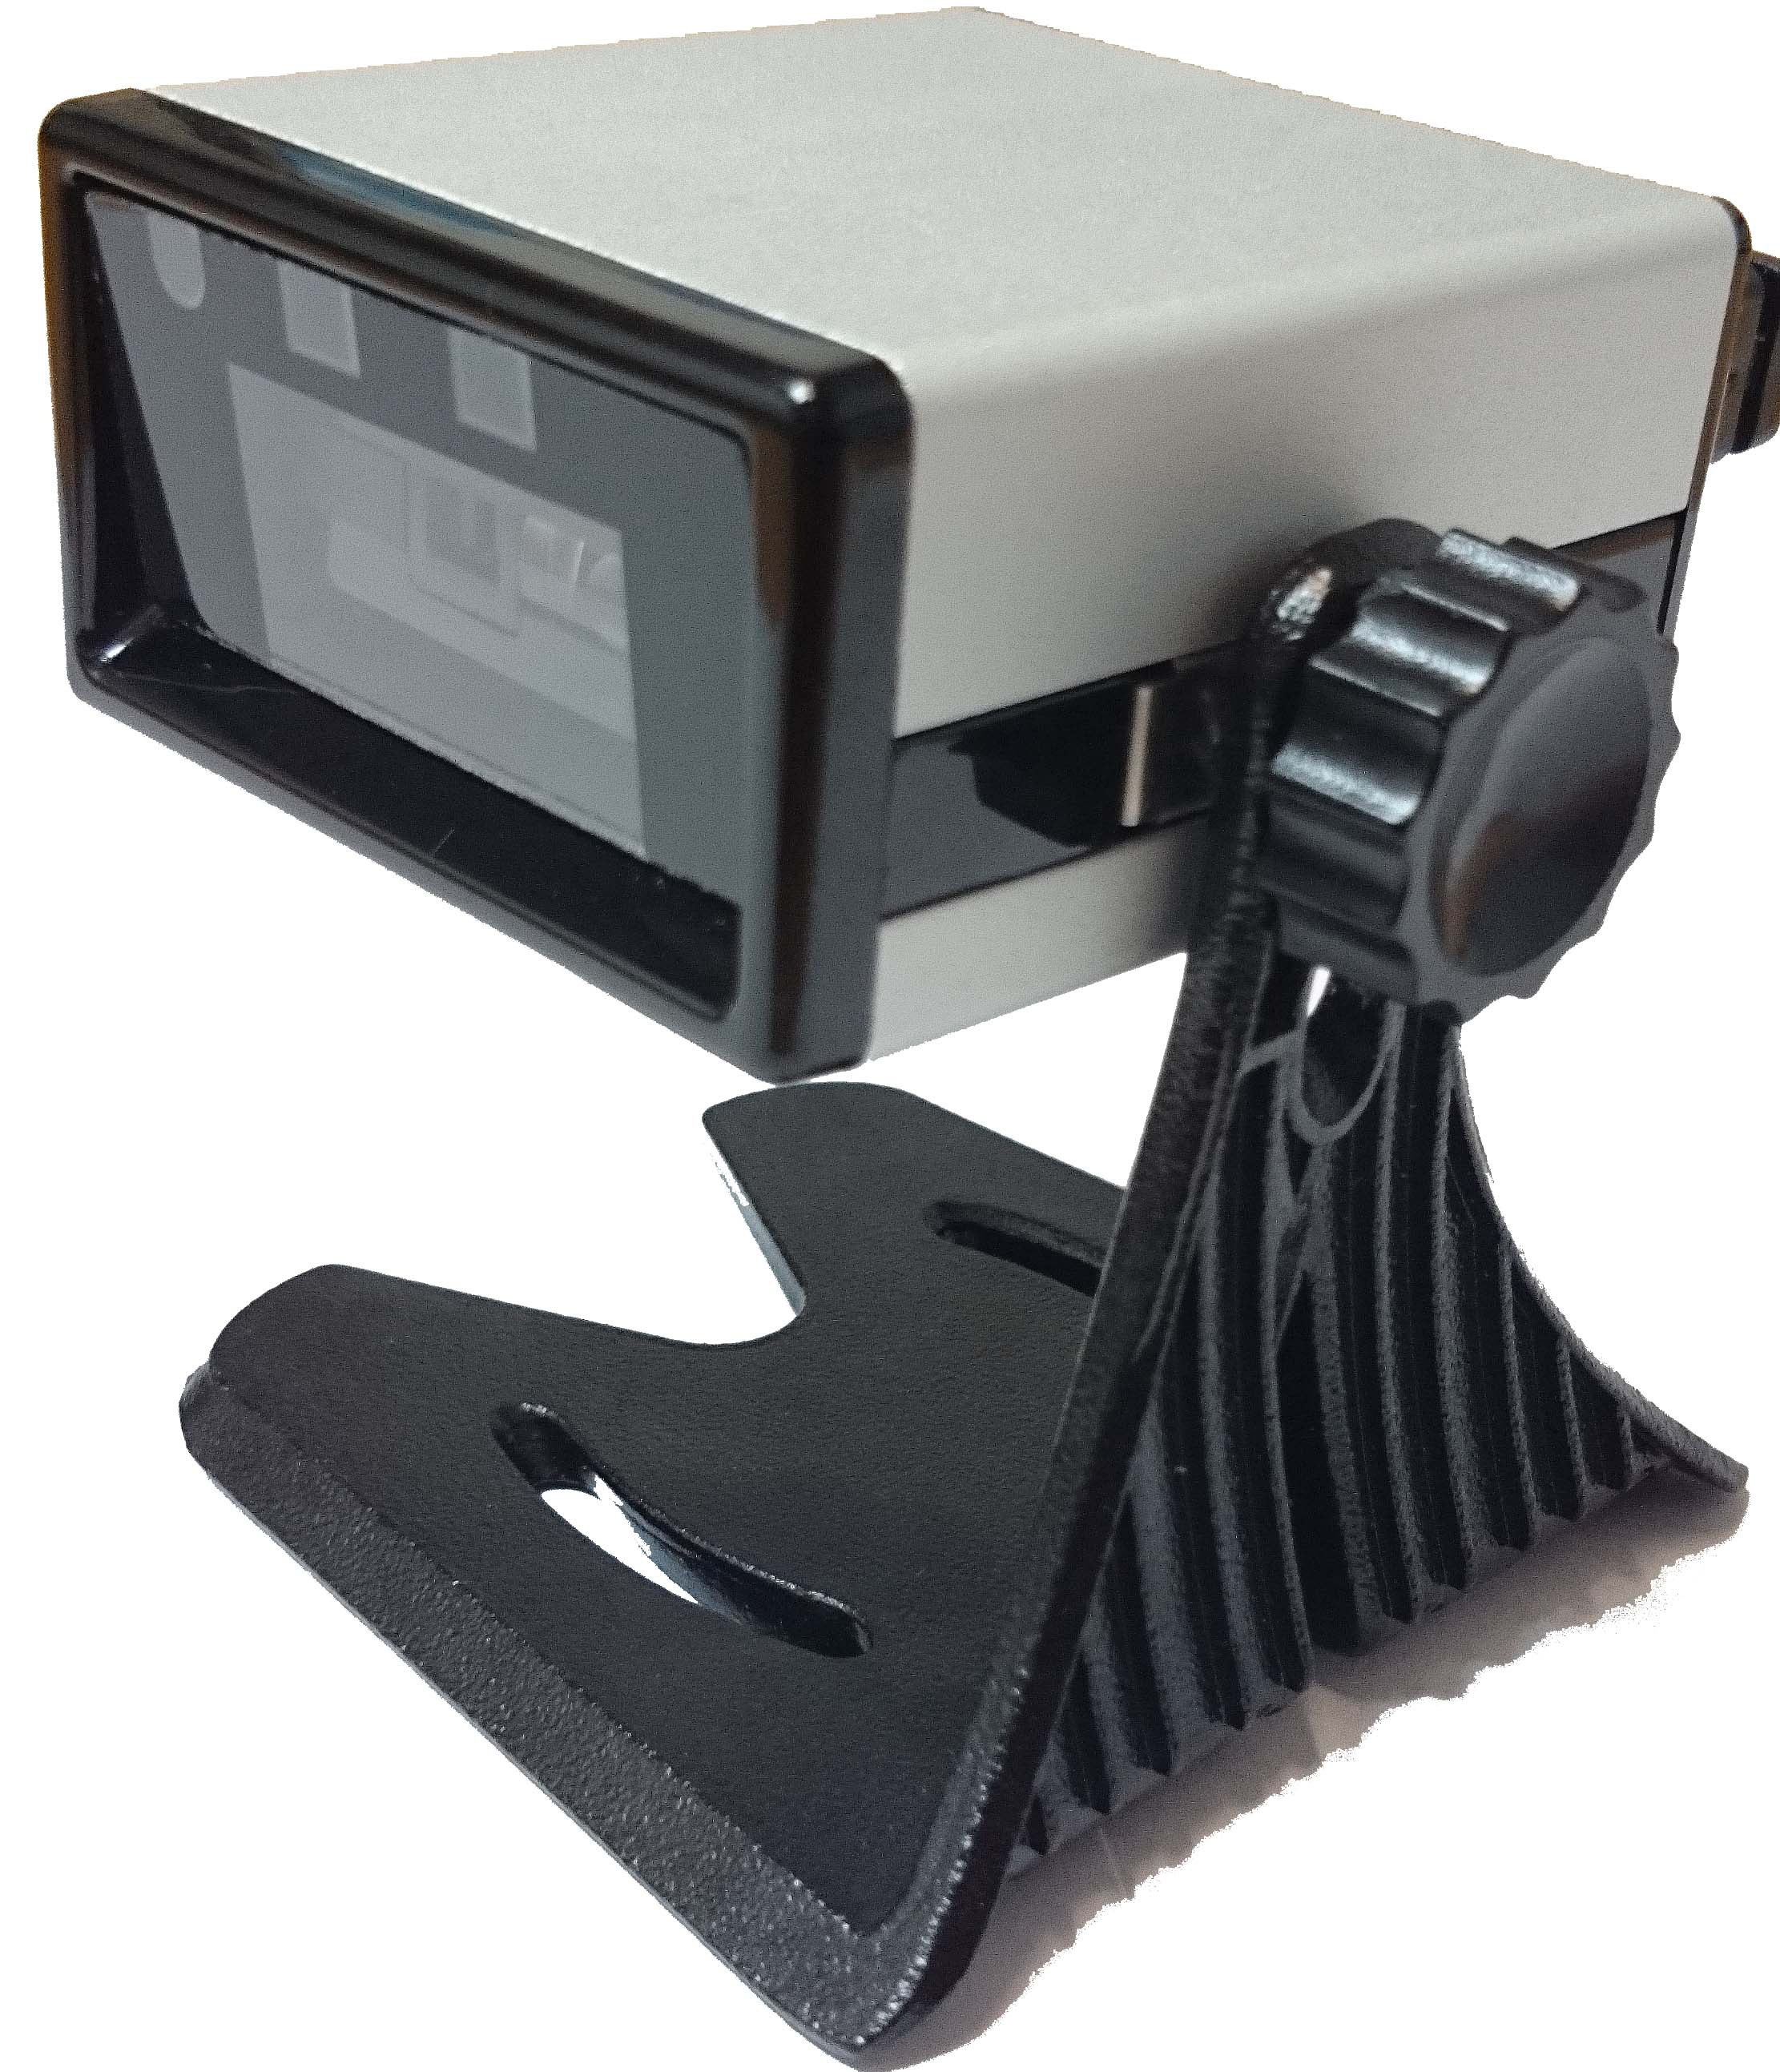 Fixed mount barcode scanner